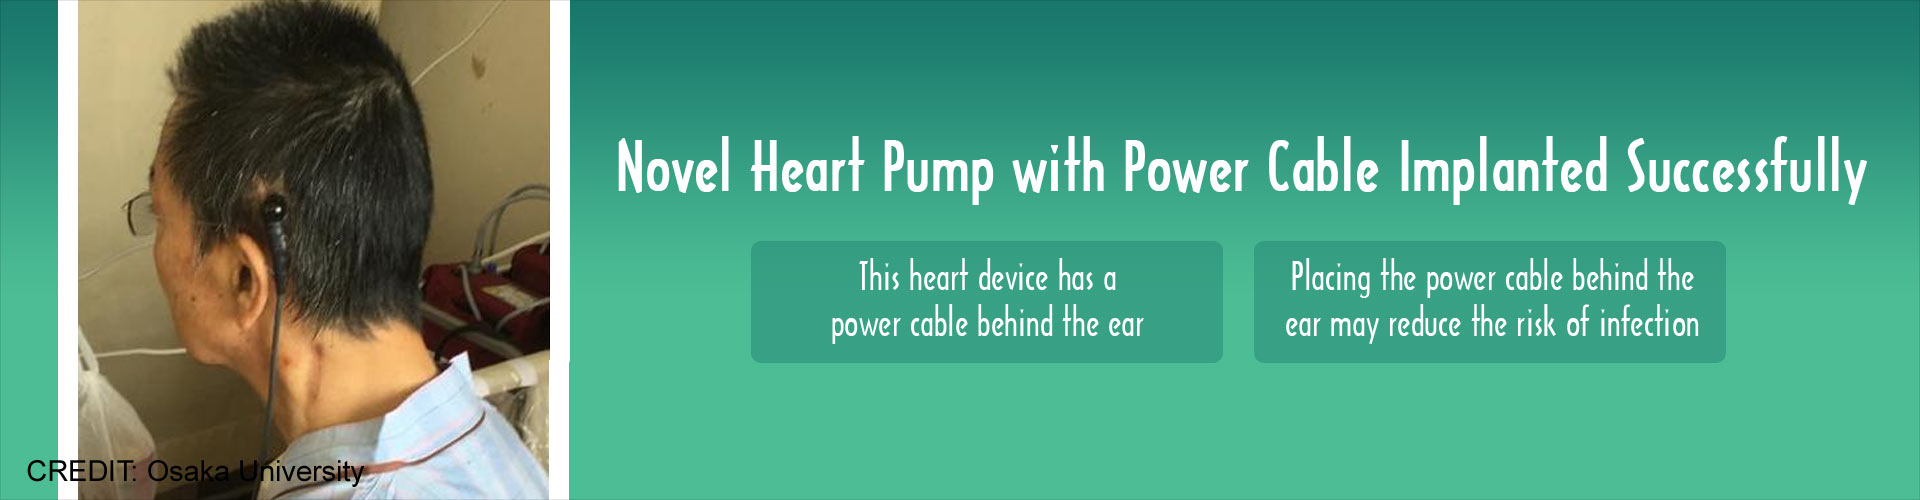 Heart Pump With Power Cable Implanted Successfully